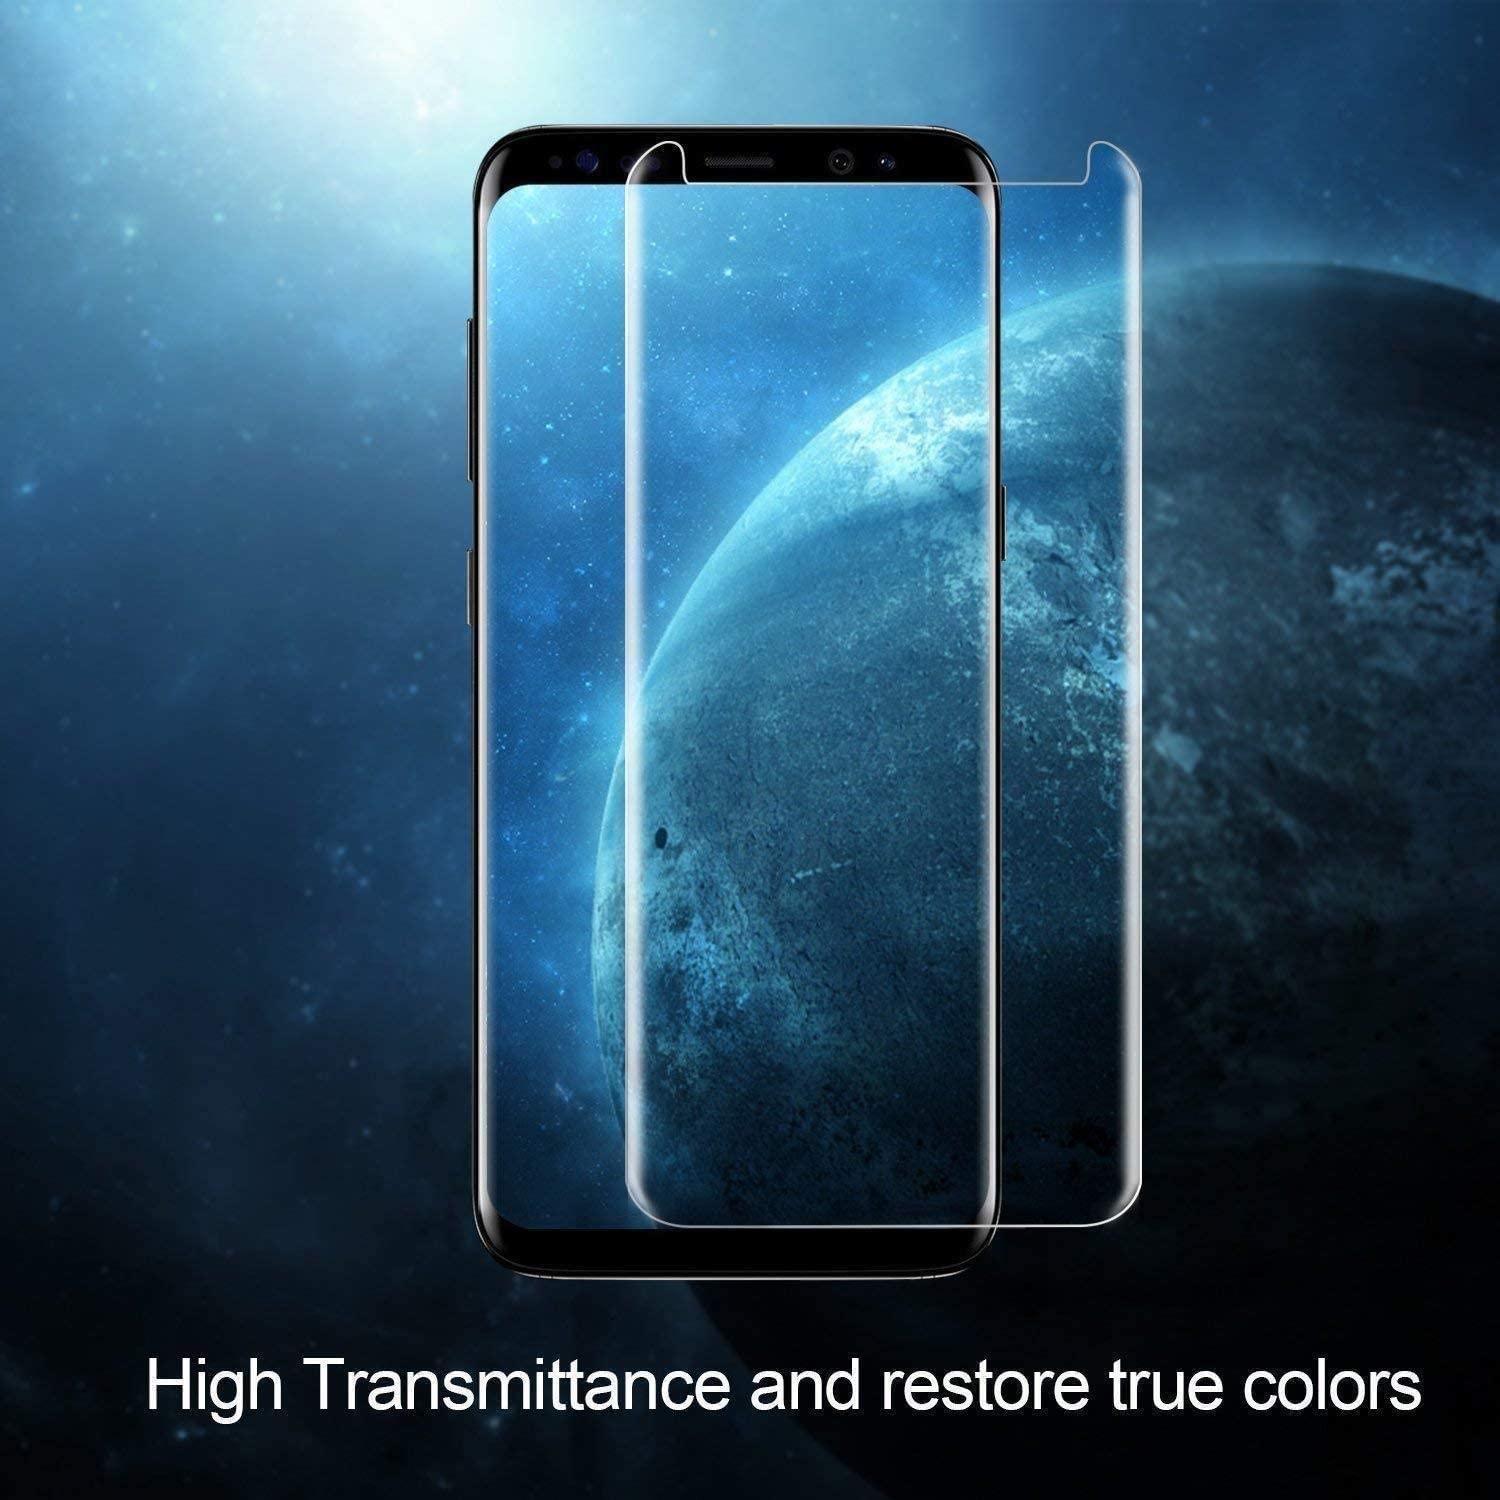 Galaxy S8 Screen Protector, (2-Pack) Tempered Glass Screen Protector [Force Resistant up to 11 pounds] [Full Screen Coverage] [Case Friendly] for Samsung S8